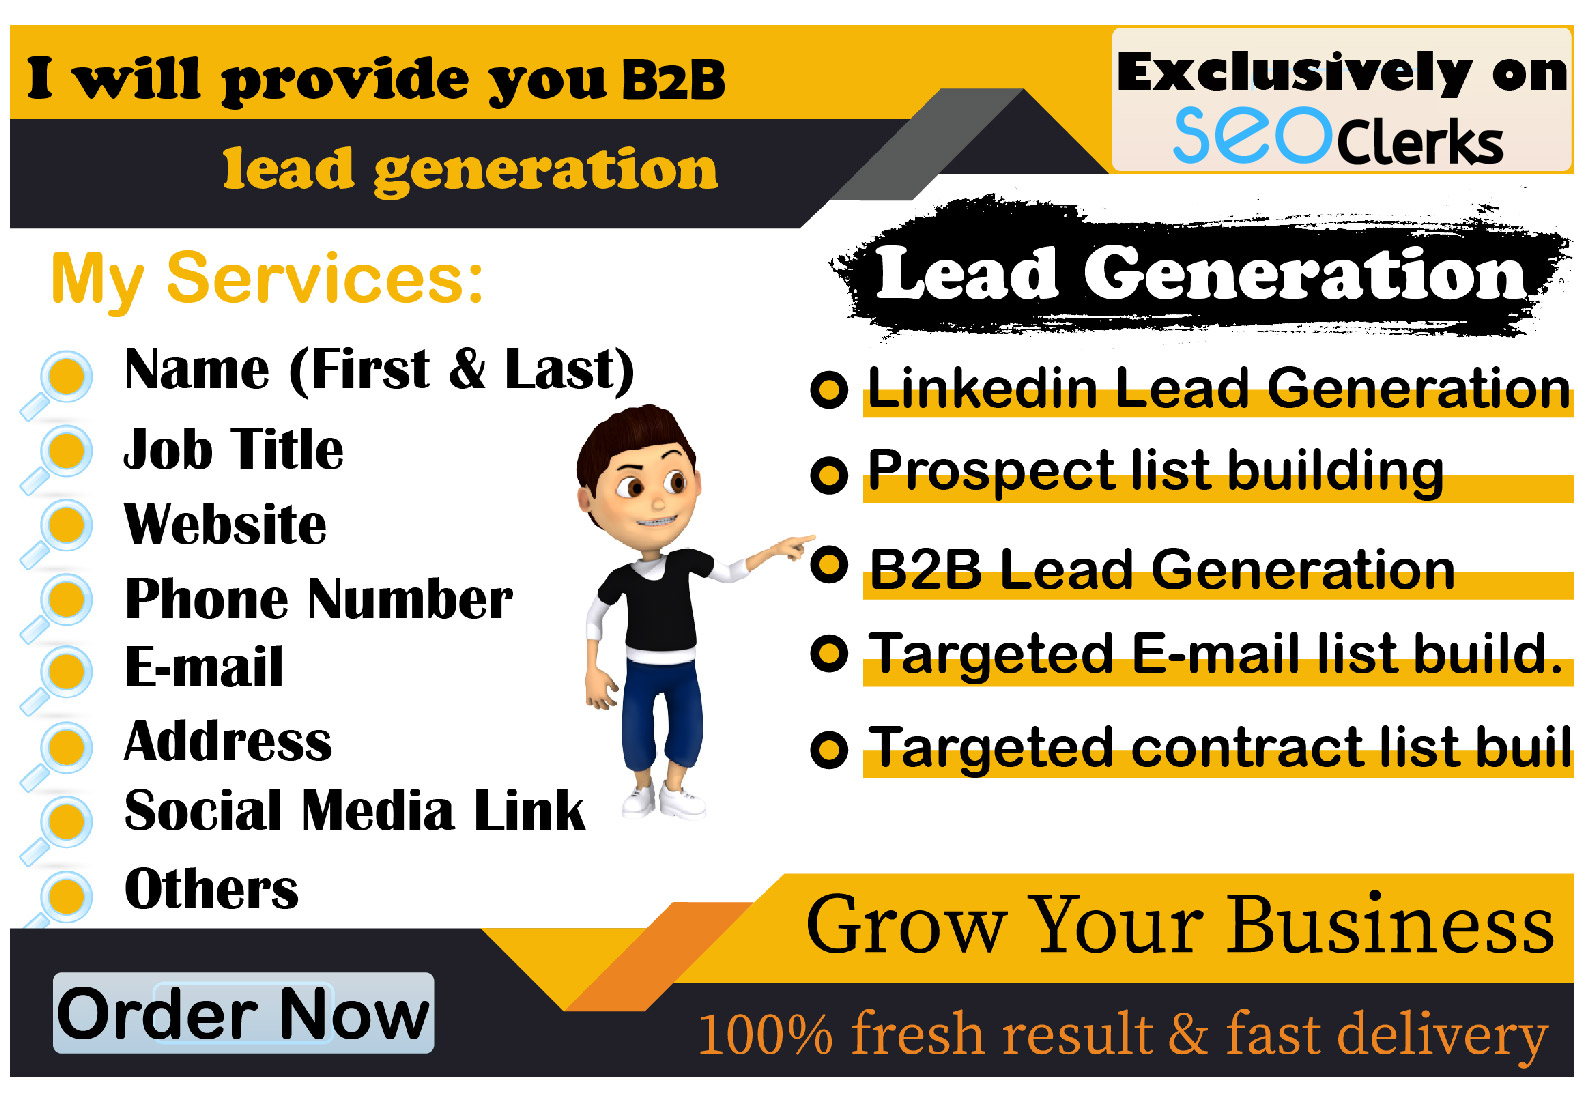 I will provide B2B lead generation and valid information